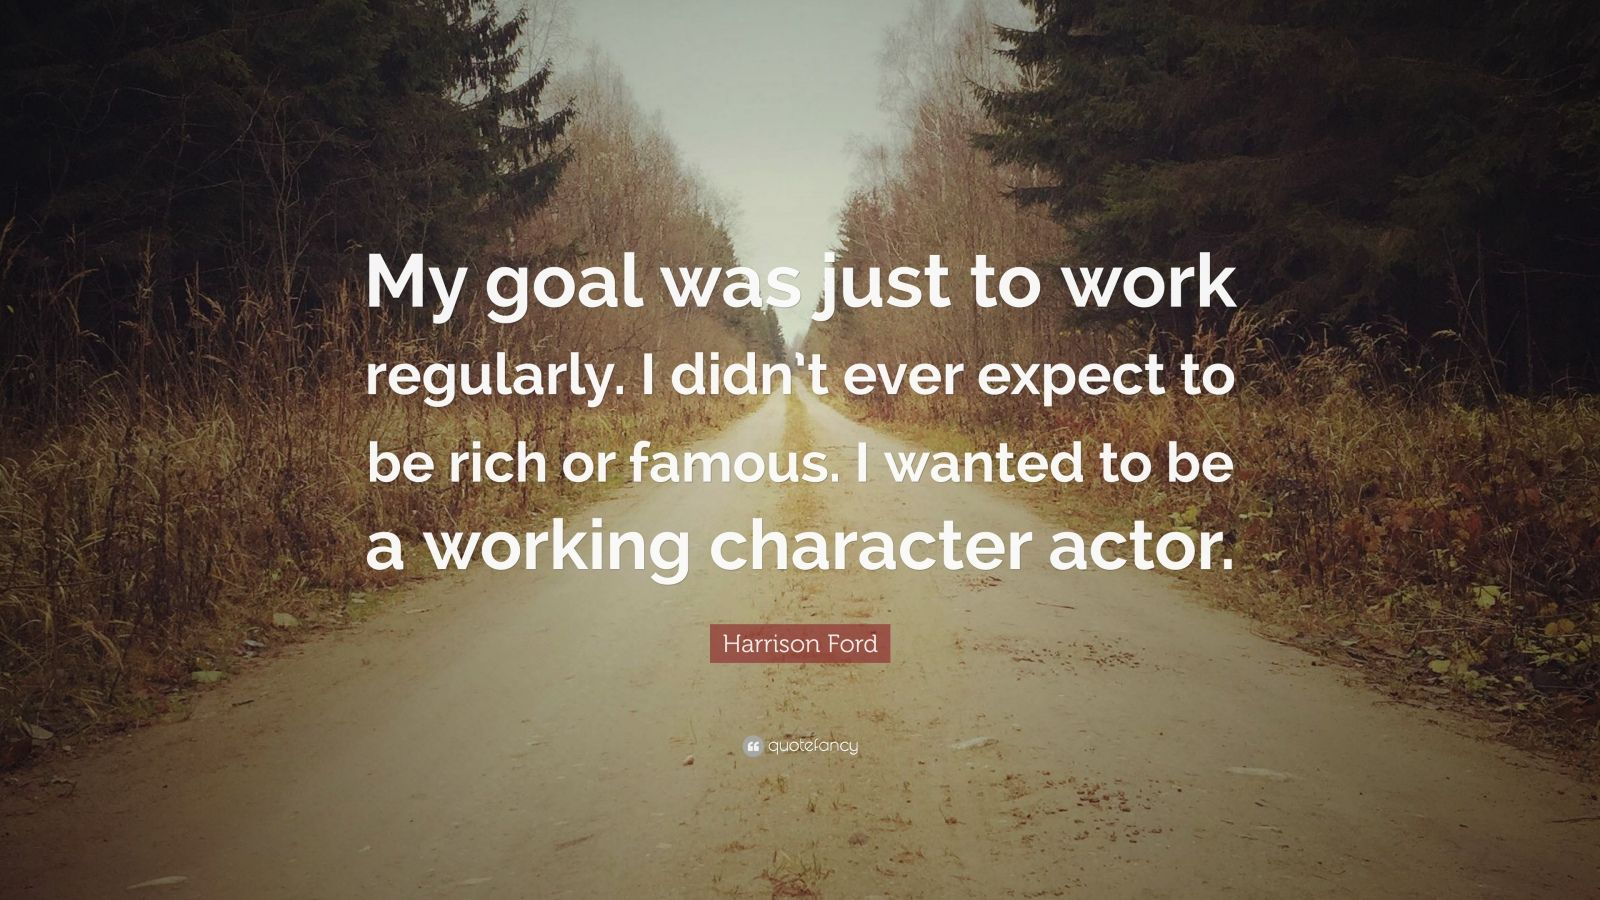 """Harrison Ford Quote: """"My goal was just to work regularly. I didn't ever expect to be rich or famous. I wanted to be a working character actor."""""""